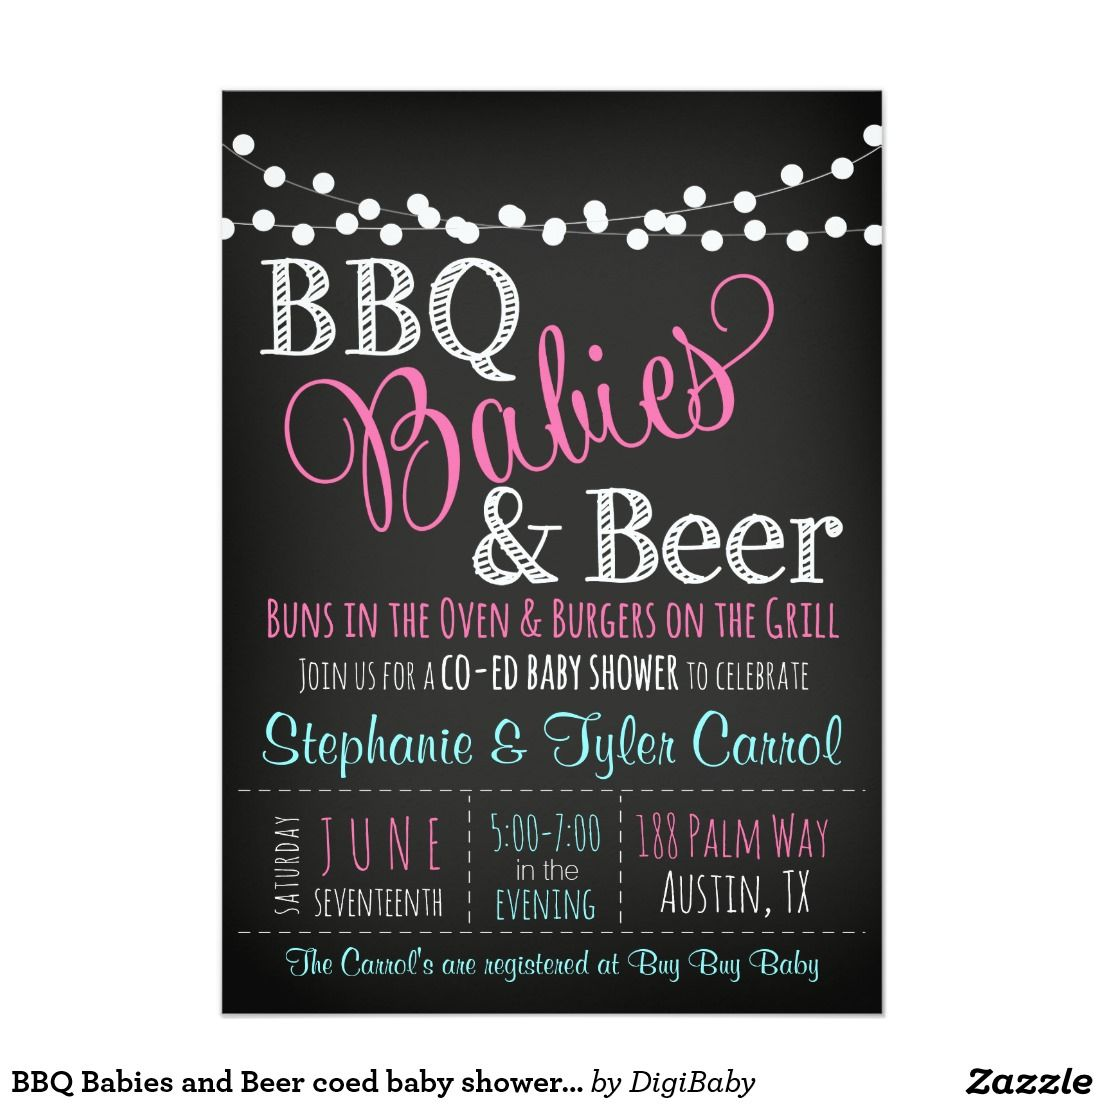 bbq babies and beer coed baby shower invitation